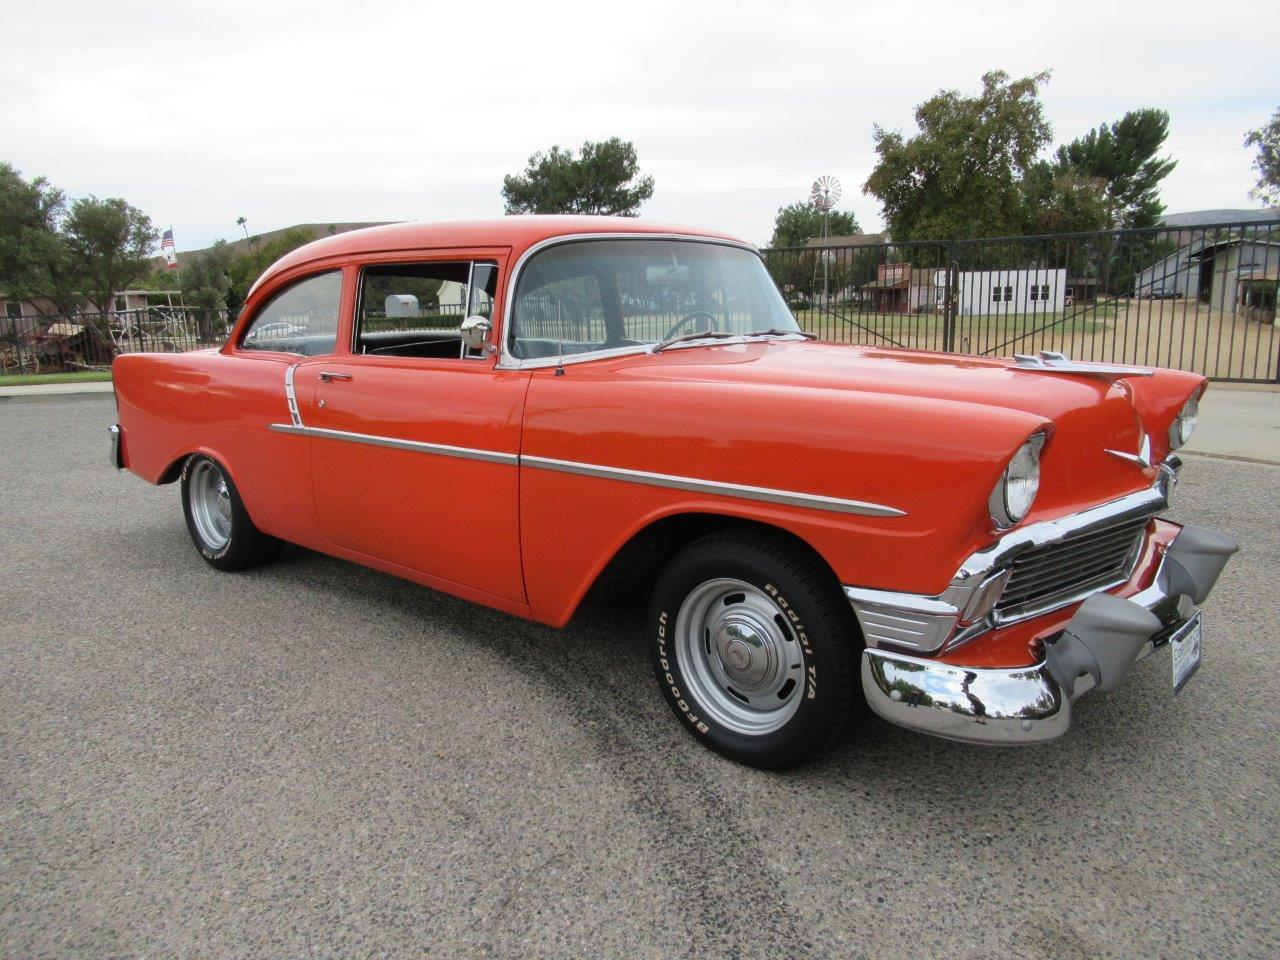 1956 Chevrolet 150 (CC-1419805) for sale in Simi Valley, California